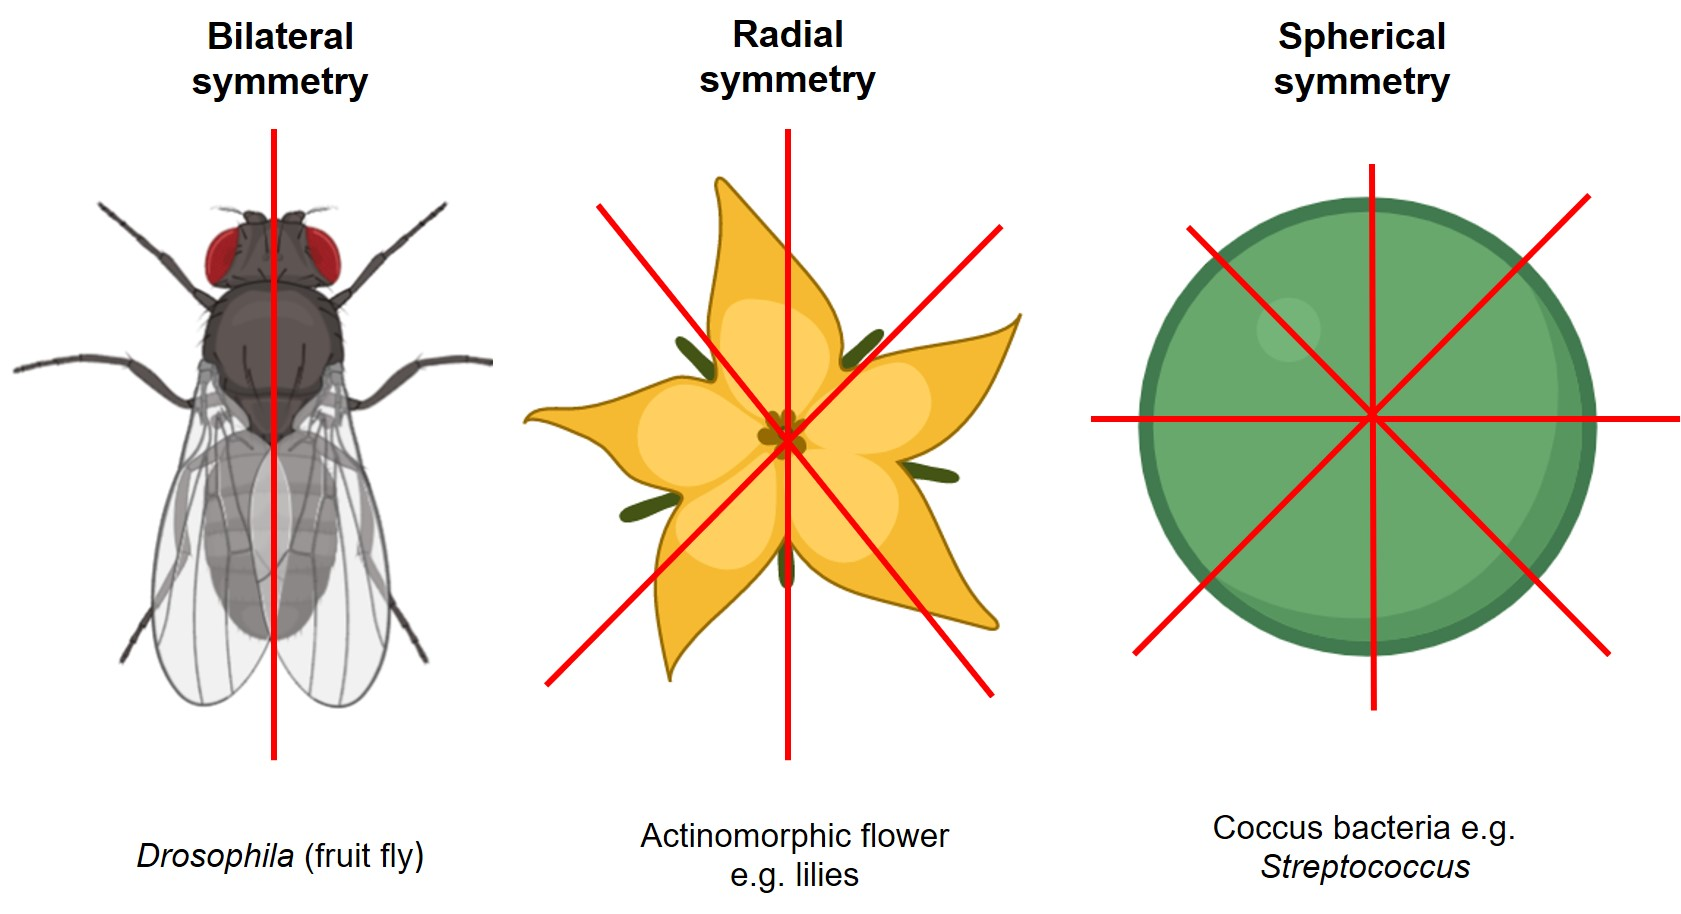 Diagram comparing bilateral, radial, and spherical symmetry